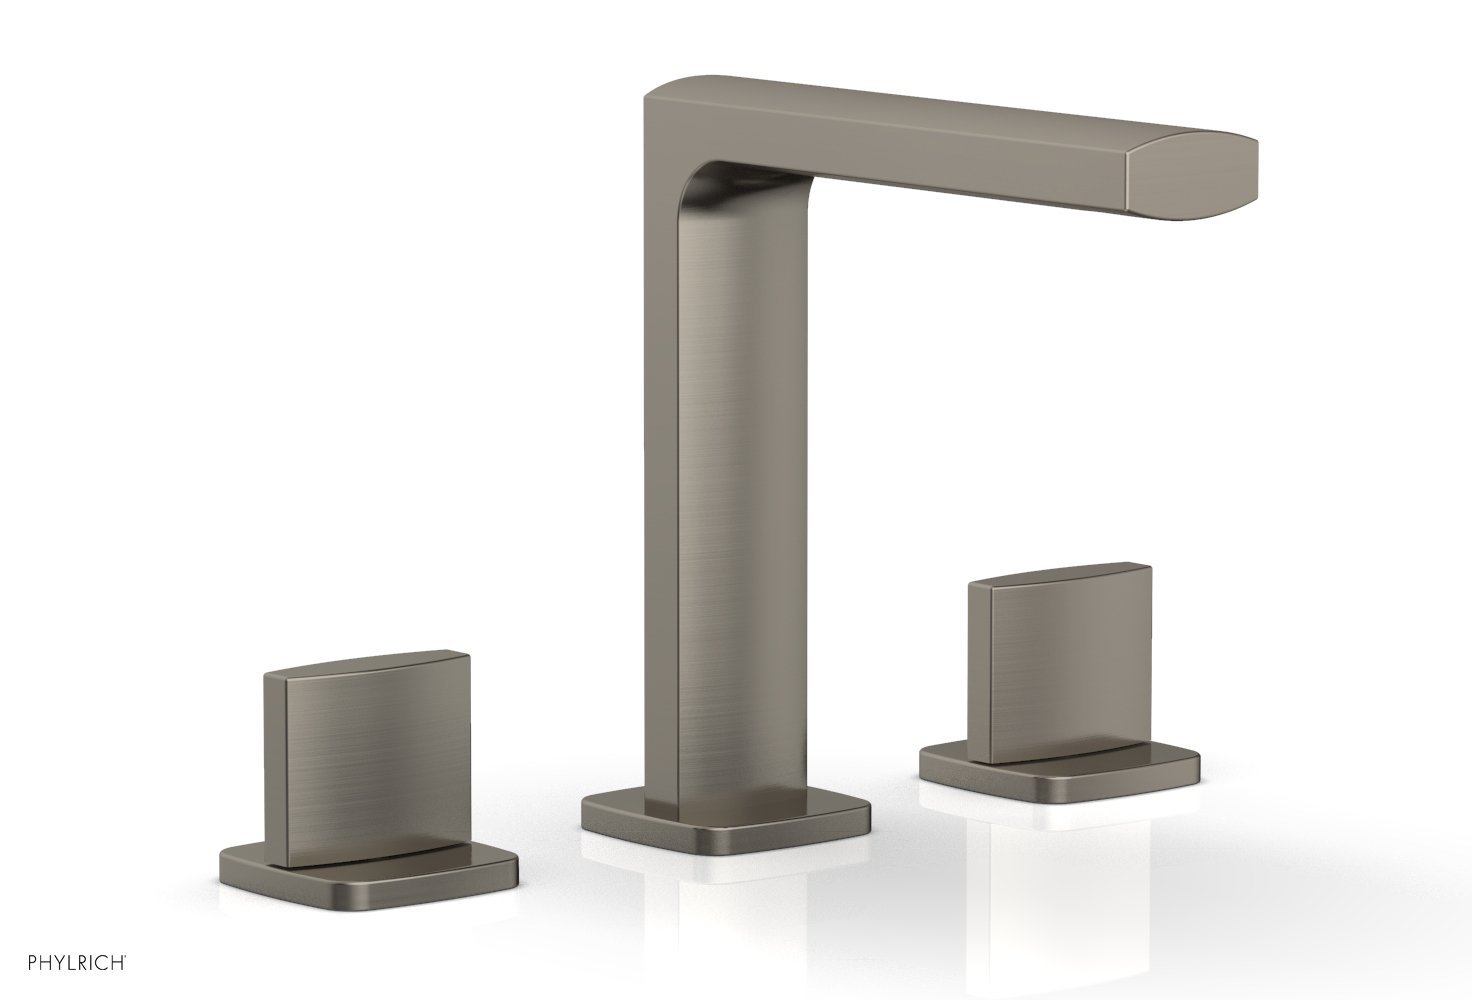 Phylrich 181-01-15A RADI Widespread Faucet - Blade Handle High Spout - Pewter